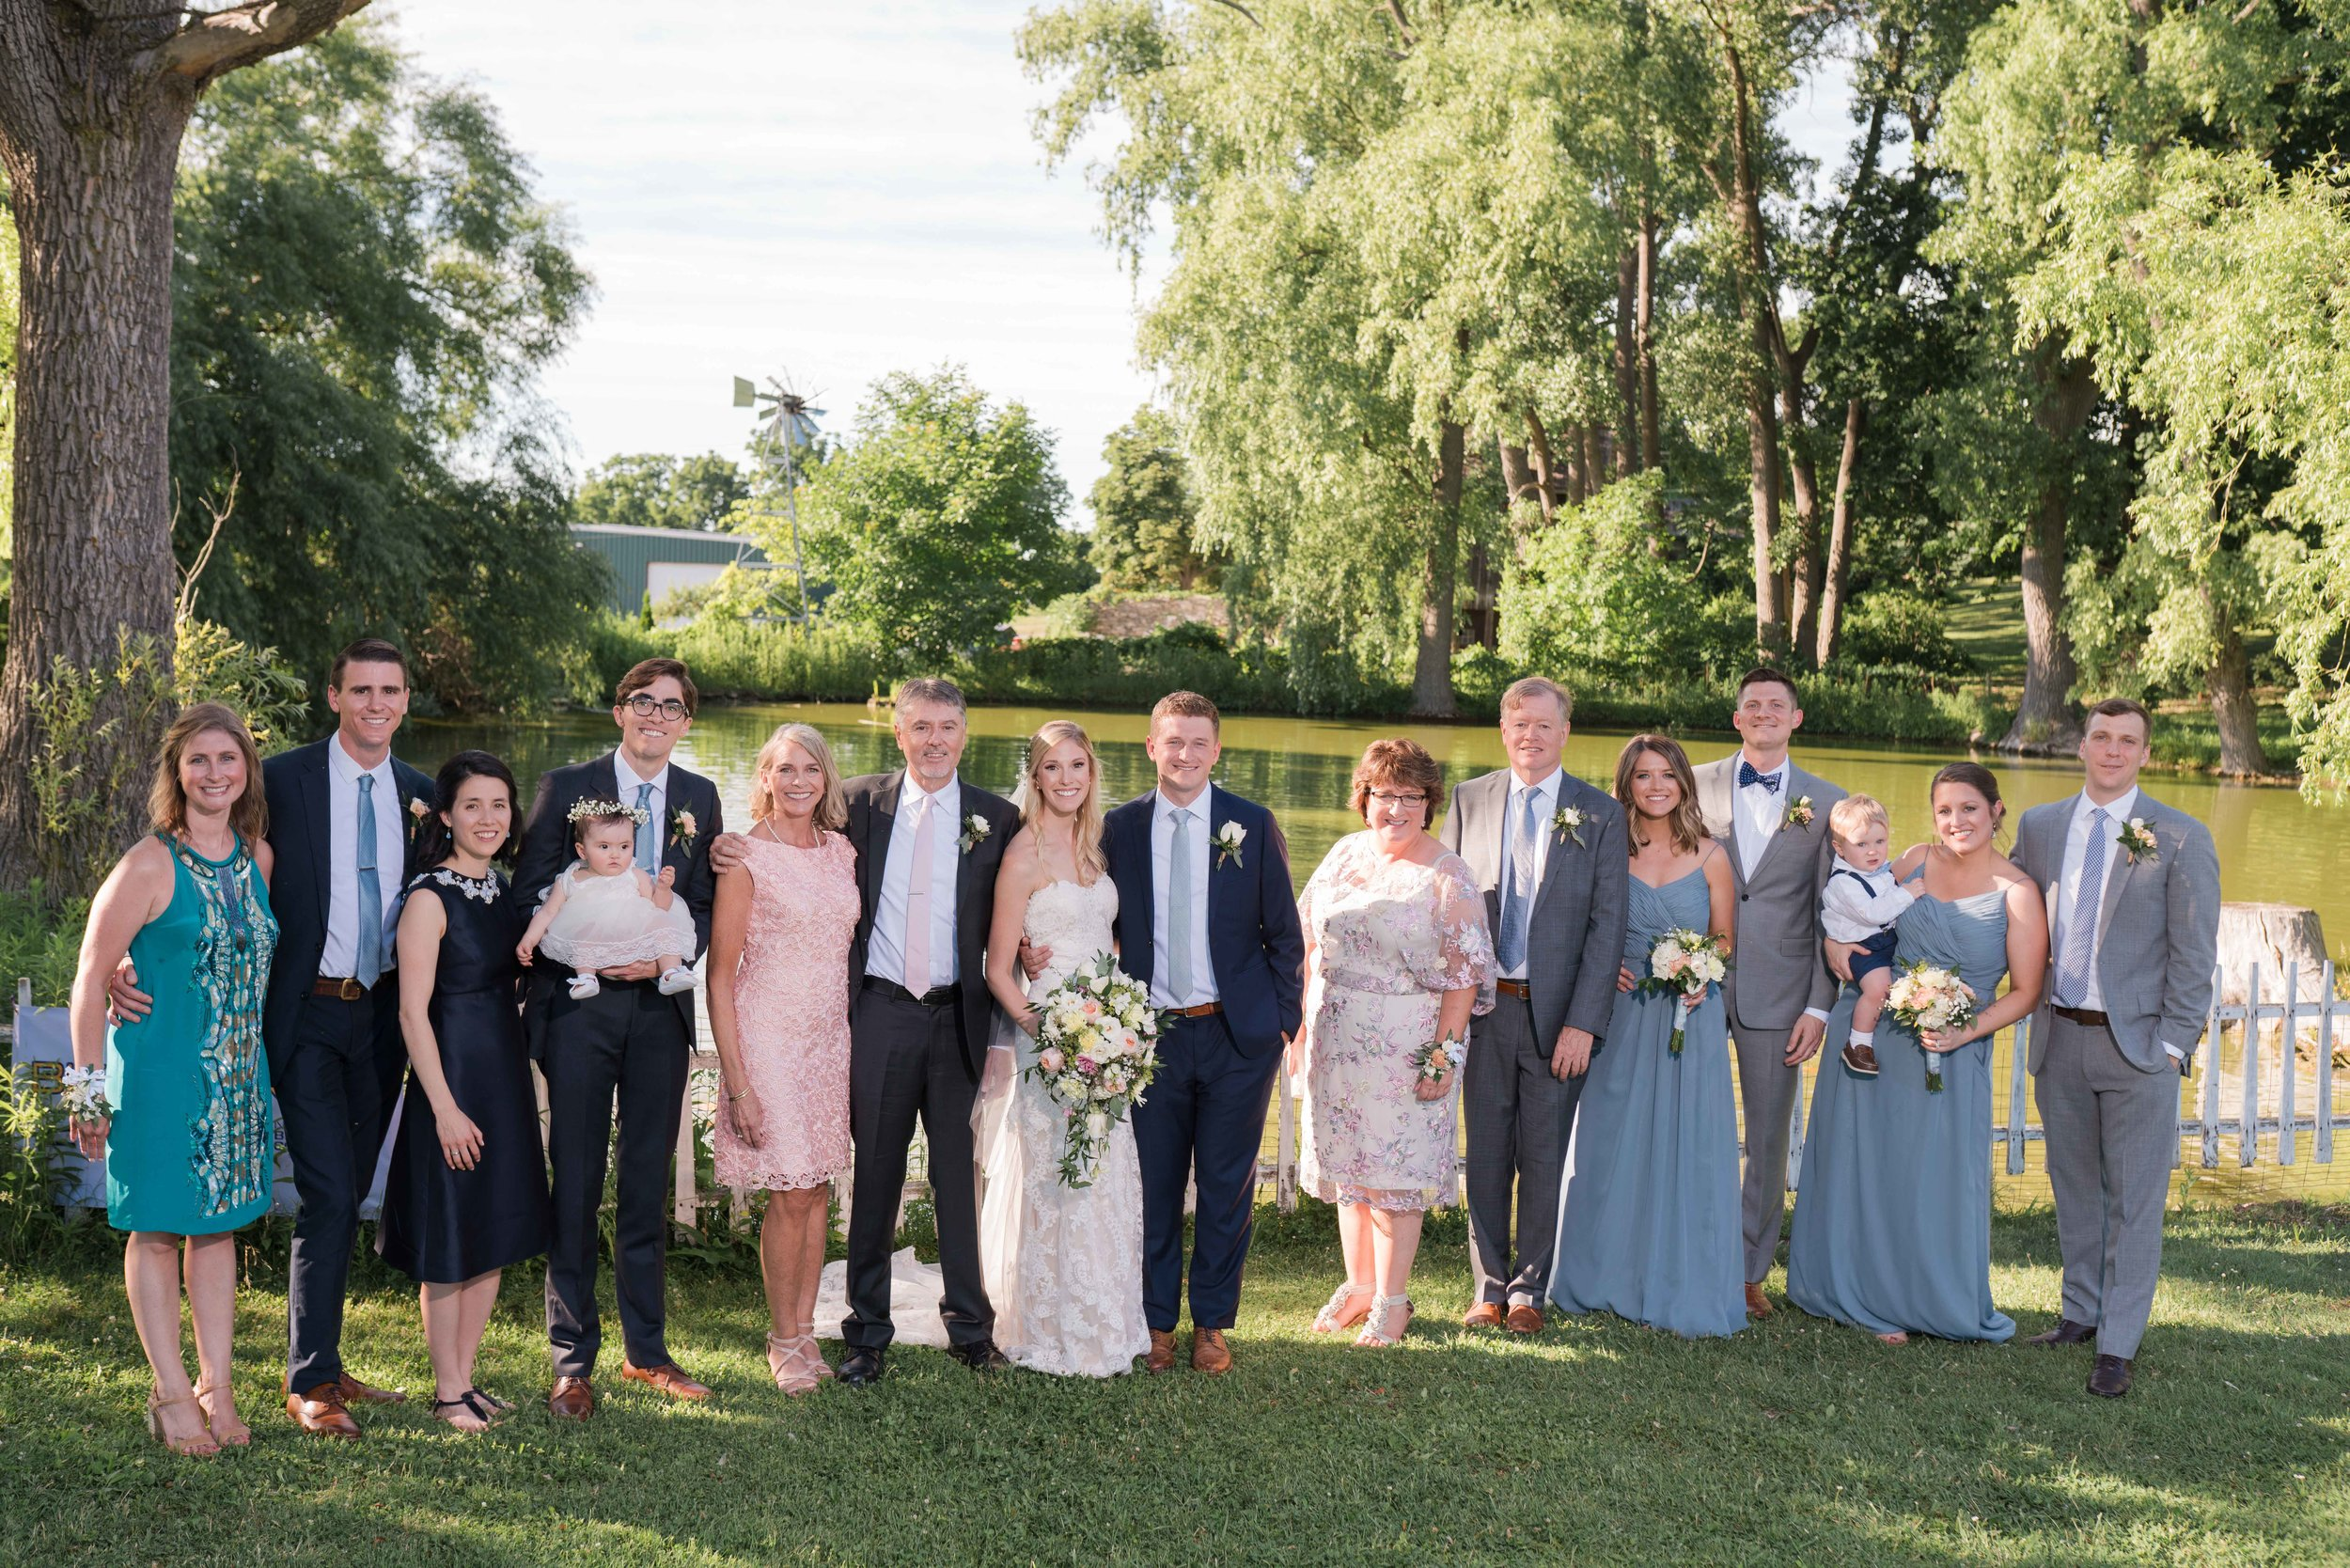 Wedding Photography at Wagner Vineyards Ginny Lee Cafe Finger Lakes by Stefan Ludwig Photography-67.jpg